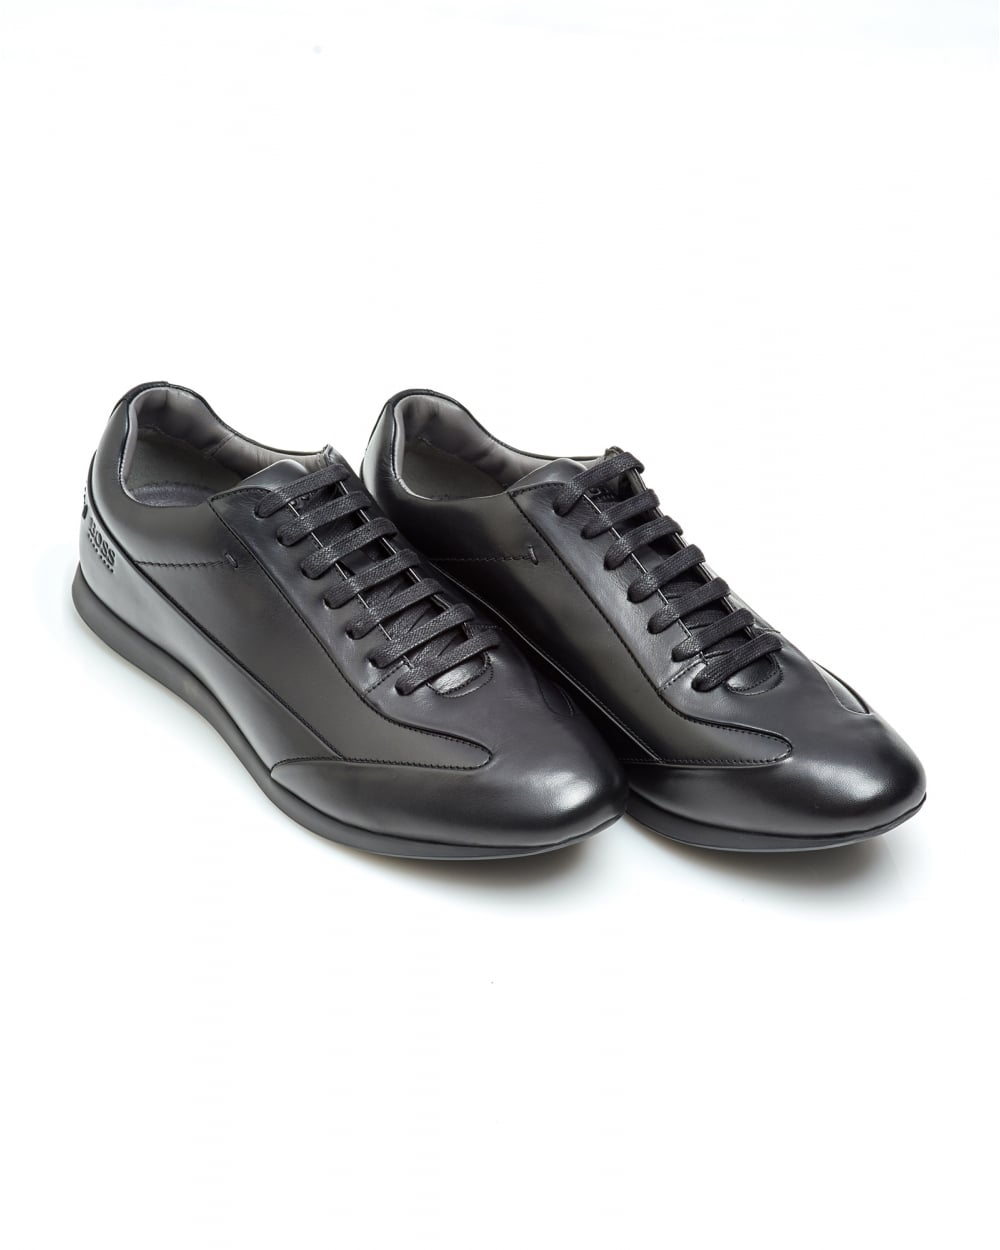 7ad099bf8fe0 Hugo Boss Black Mens Fult Trainers